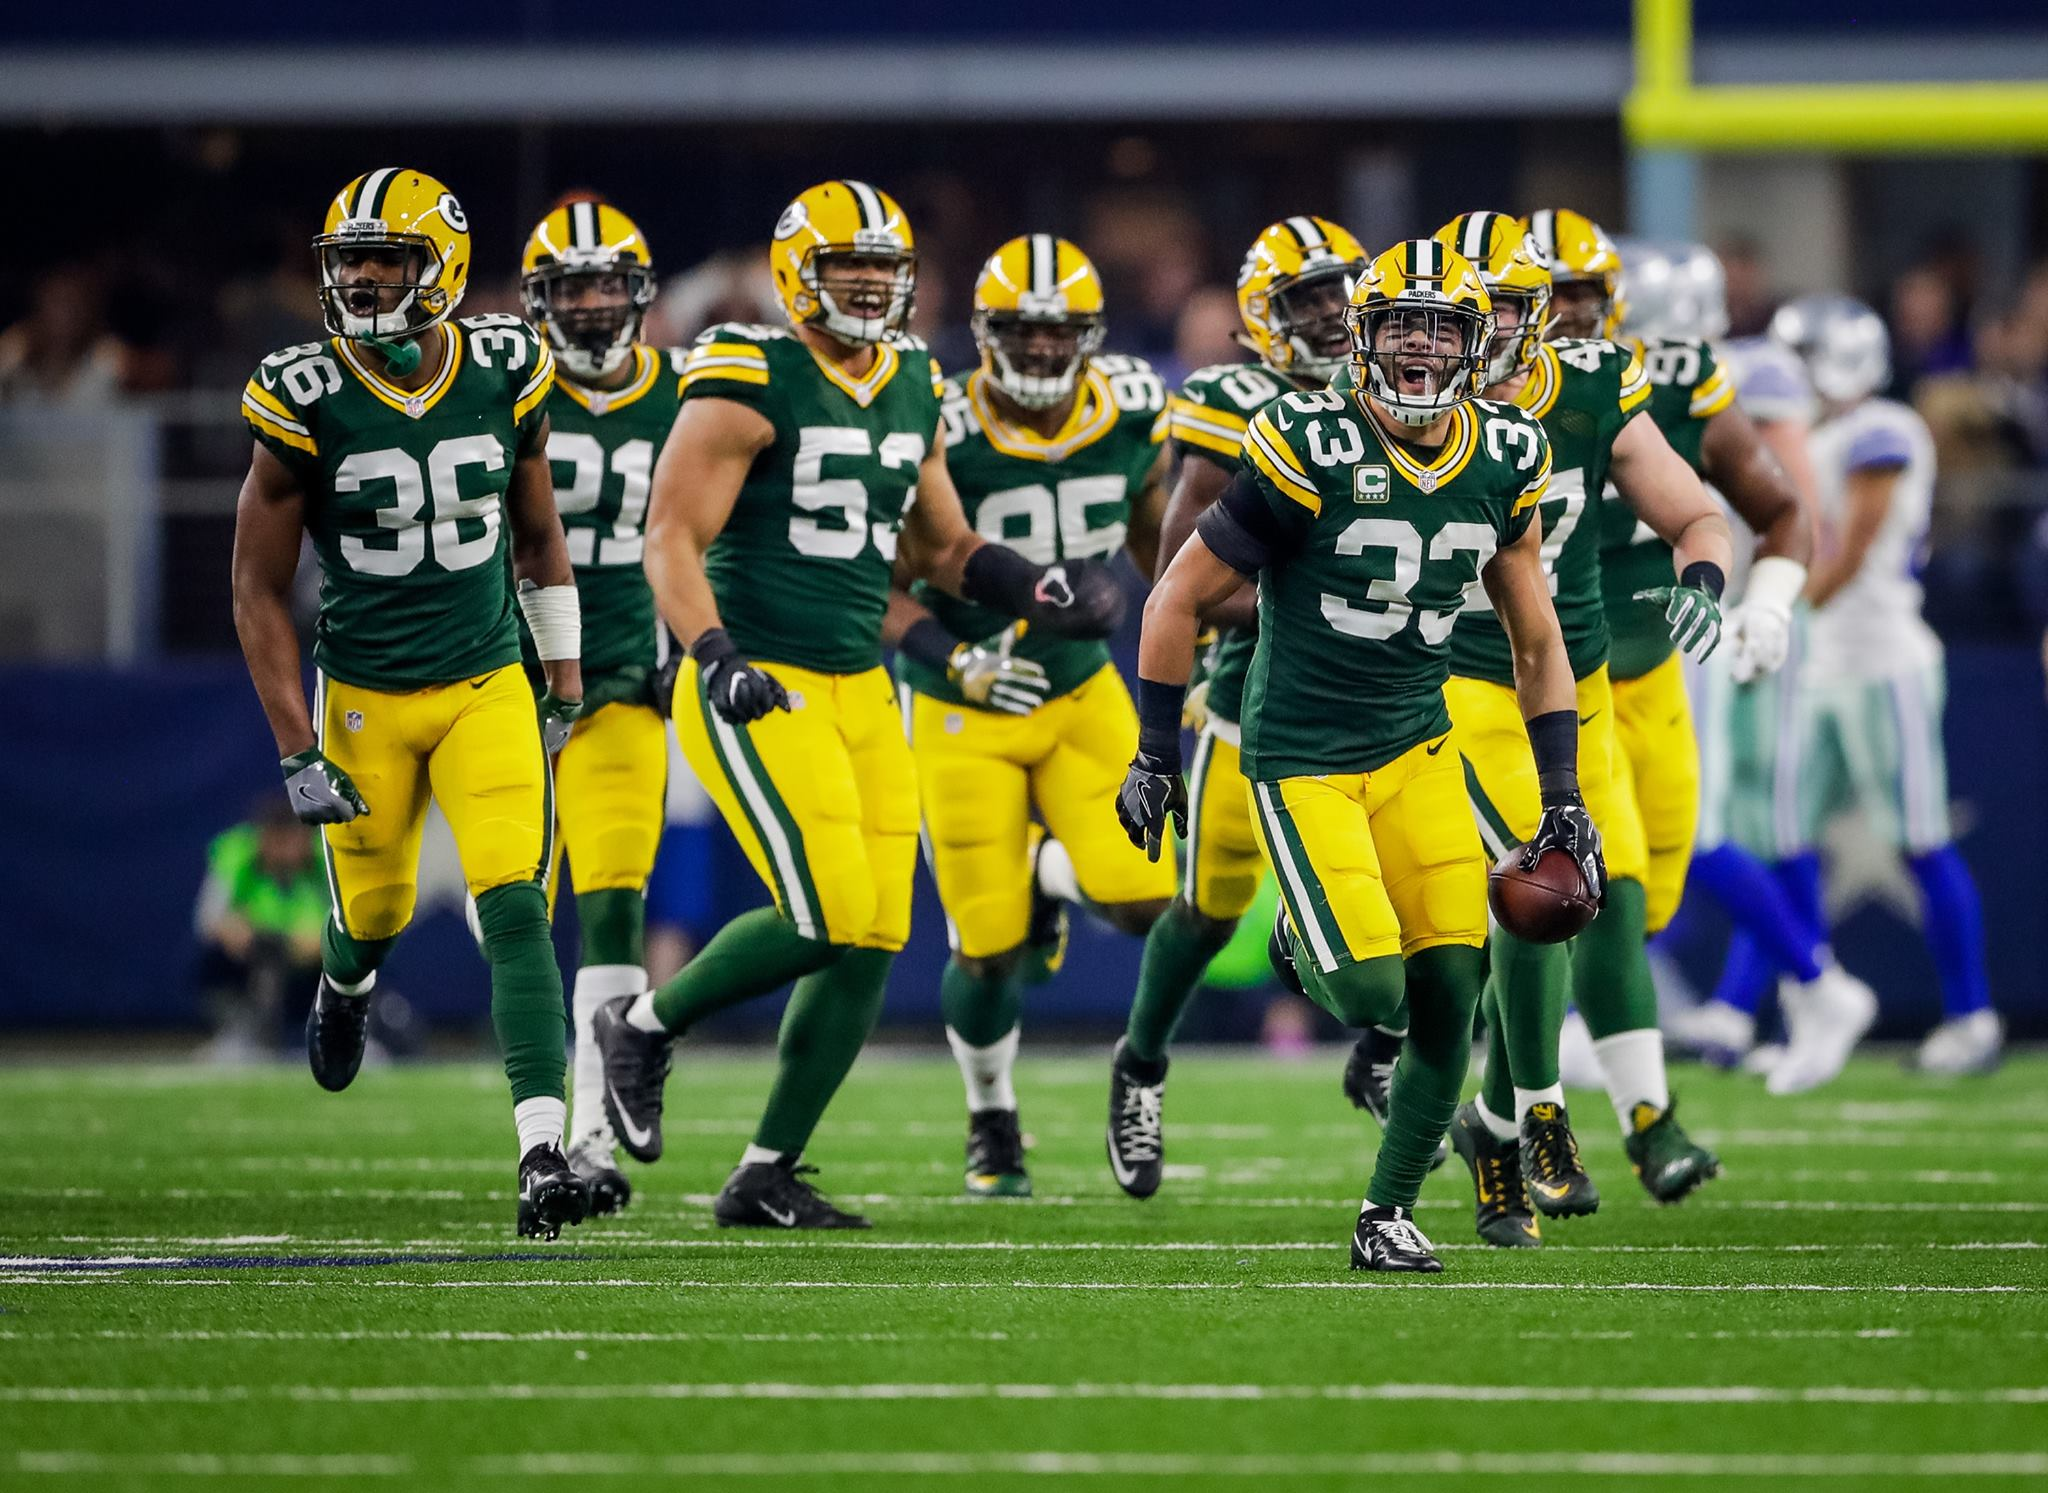 Sometimes something bigger can be attending a thrilling post-season game where you're able to watch your team win with seconds remaining. #GoPackGo